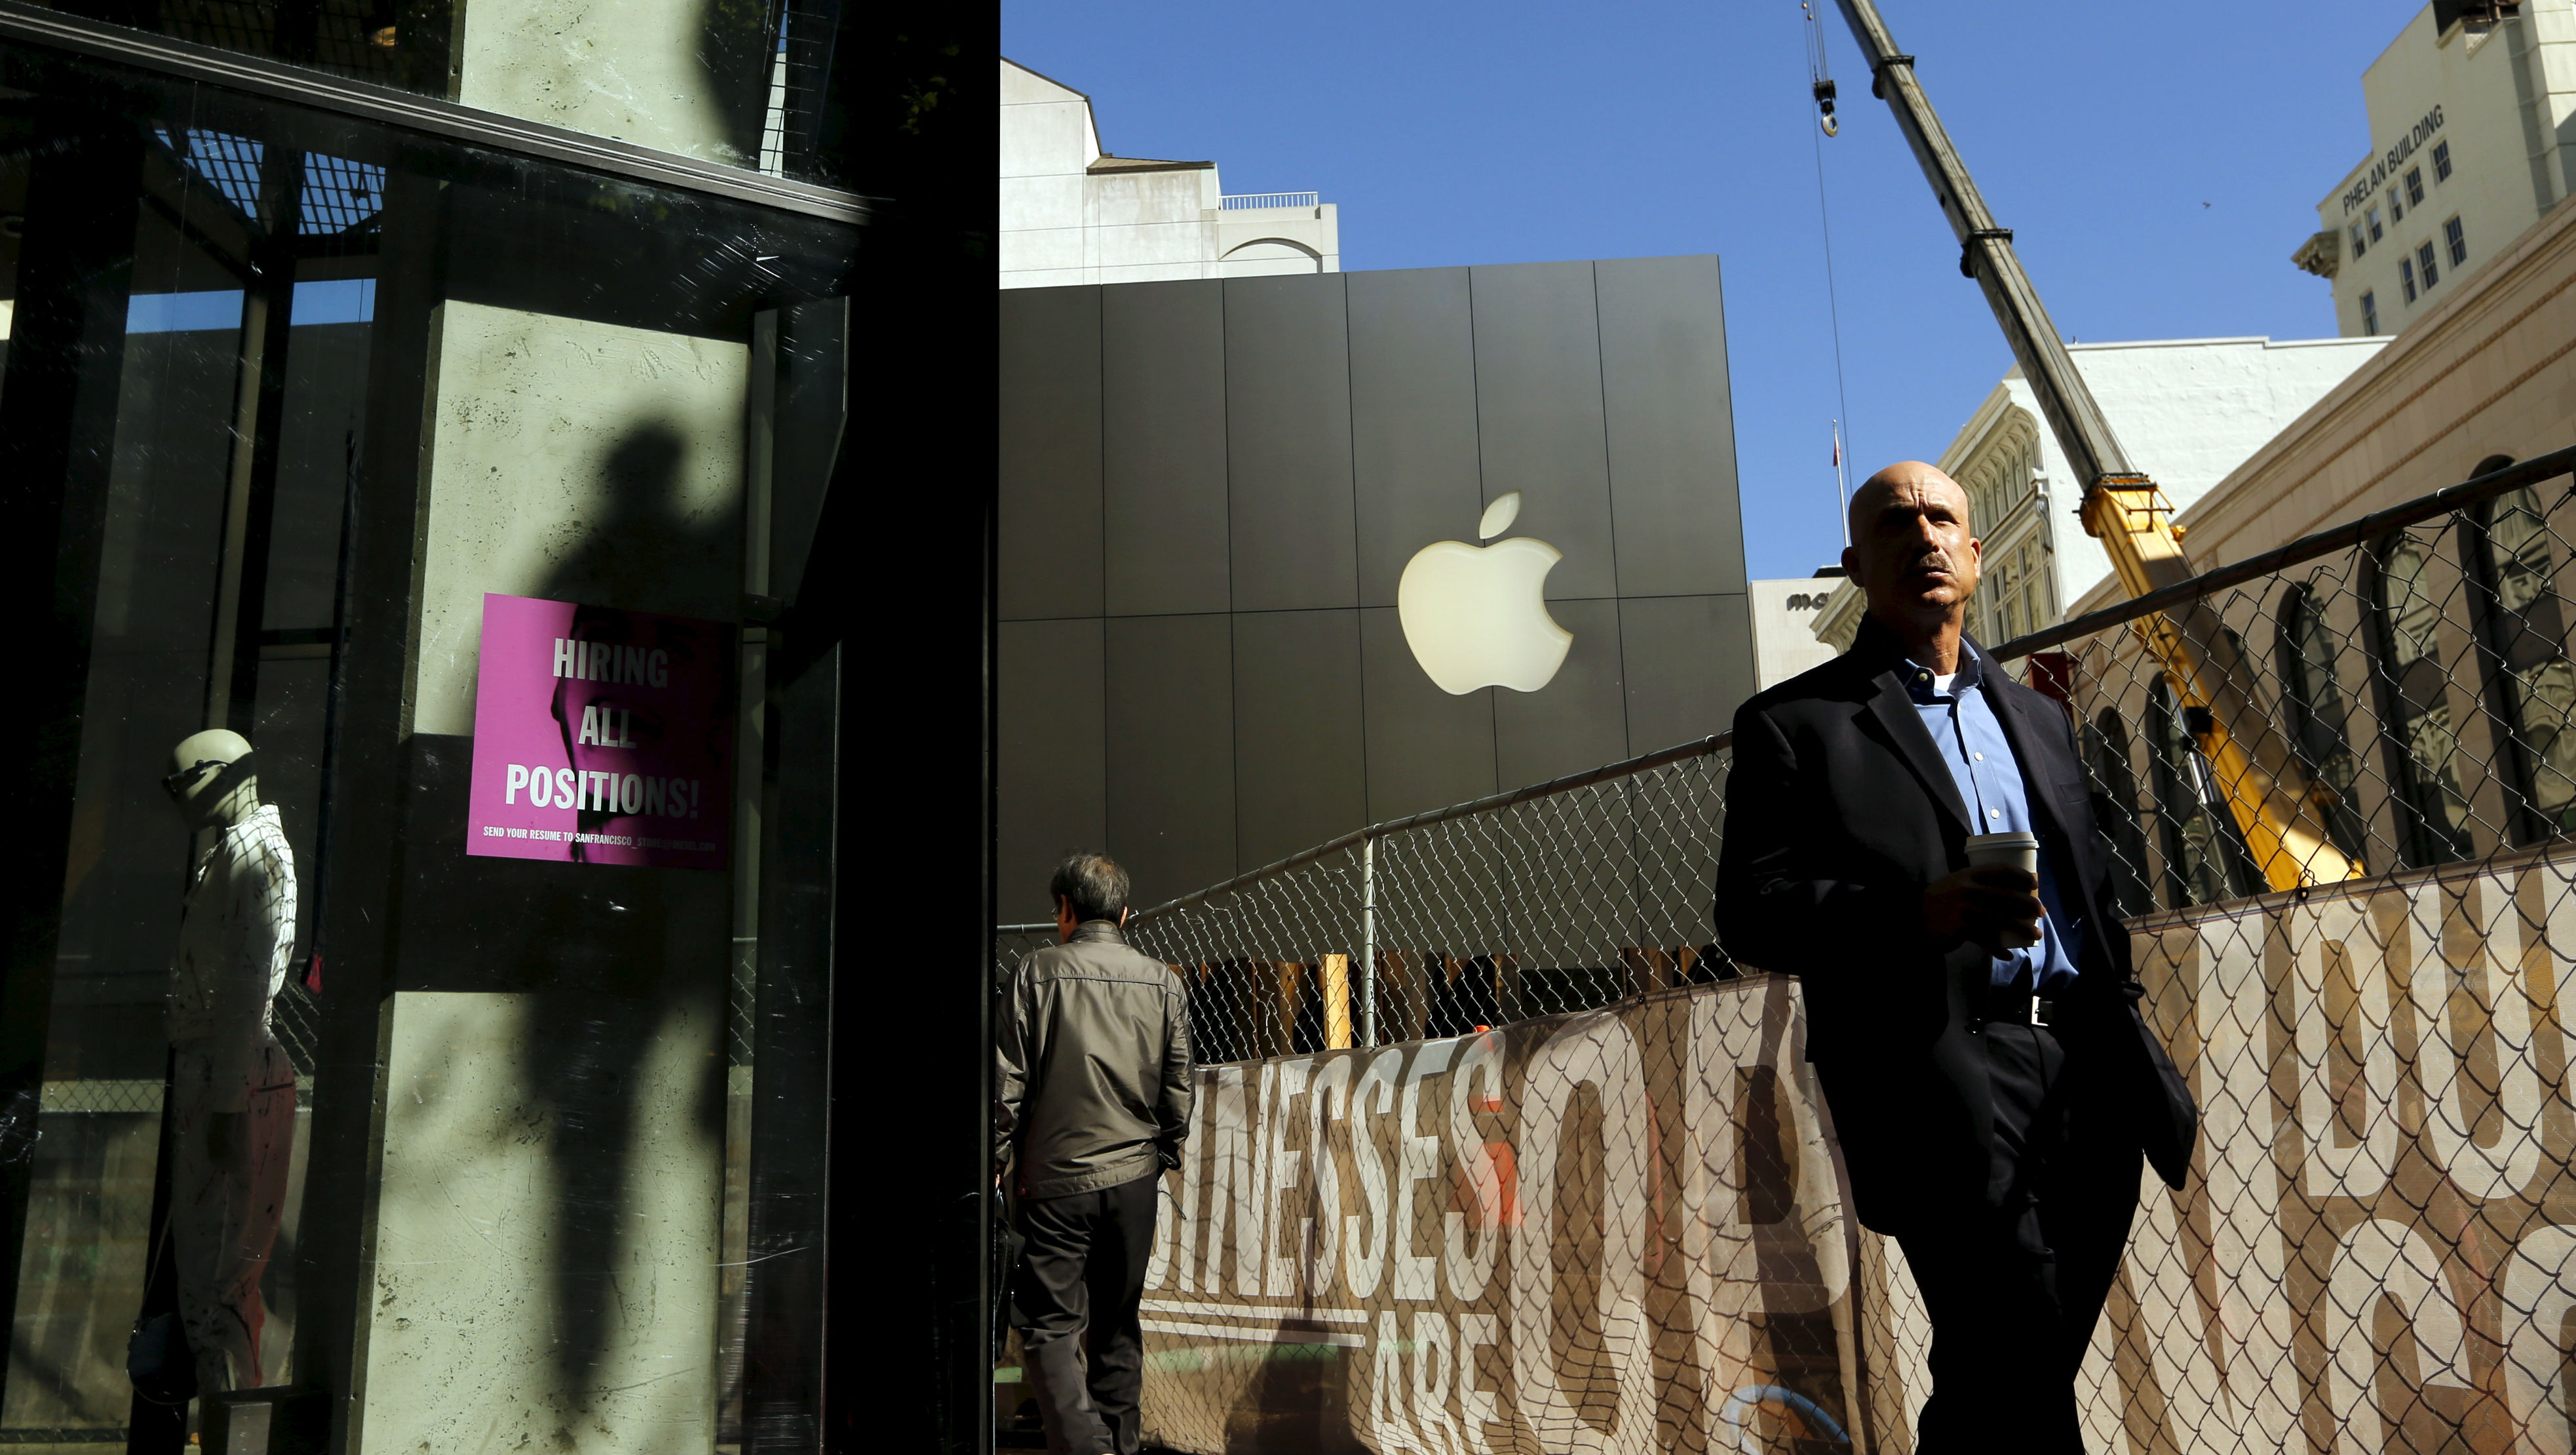 Pedestrians walk near the flagship Apple retail store in San Francisco, California April 27, 2015. Apple shares were up 1.1 percent at $13.59 ahead of its results, due after the close. Analysts expect Apple's quarterly revenue to rise 23 percent to $56.07 billion.  REUTERS/Robert Galbraith      TPX IMAGES OF THE DAY      - RTX1AJ25